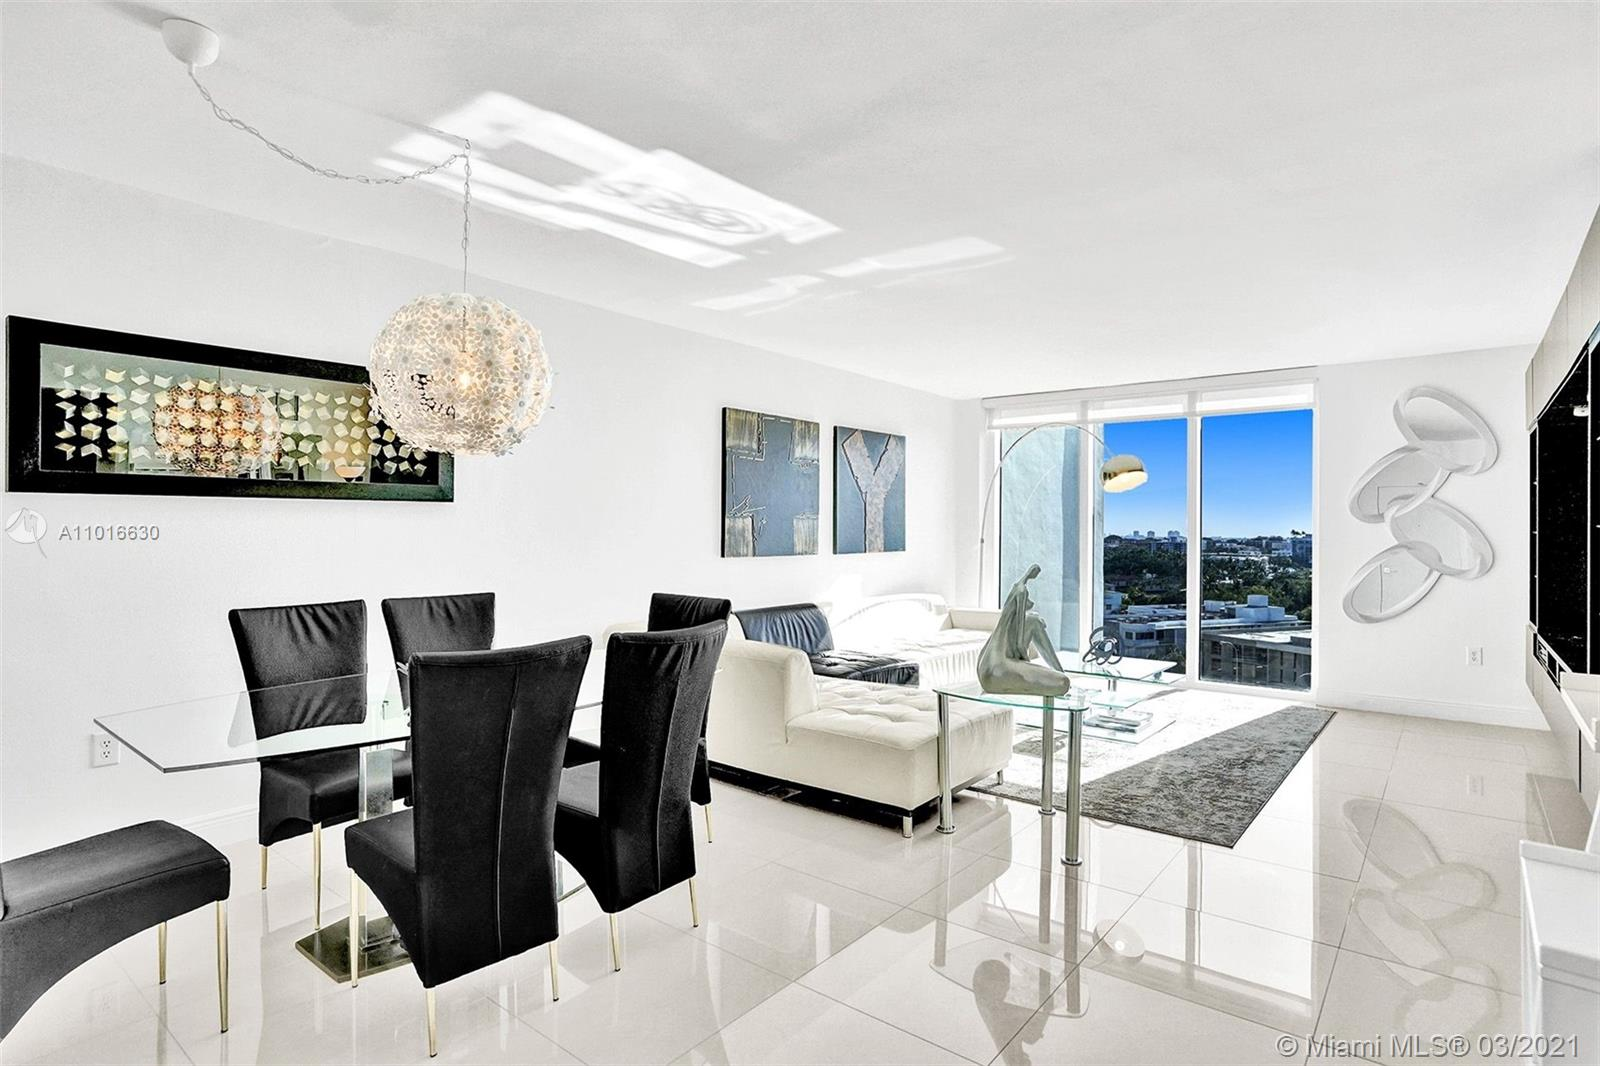 Fantastic TURNKEY UNIT! 2 bedrooms and 2 bathrooms in the prestigious Harbour House building in Bal Harbour, Florida! Enjoy beautiful porcelain floors throughout the entire unit, floor to ceiling windows with a gorgeous view of the Miami waterfront, extra wide balcony and beautiful Italian kitchen cabinetry! Harbour House offers a food market, resort-style amenities such as 24-hour concierge, theater room, poolside restaurant, world-class spa, cabanas, full beach services, oversized pool and more, your very own 5 star resort home! Just a short walk to Bal Harbour shops, offering the best shopping and dinning experience. Easy to show